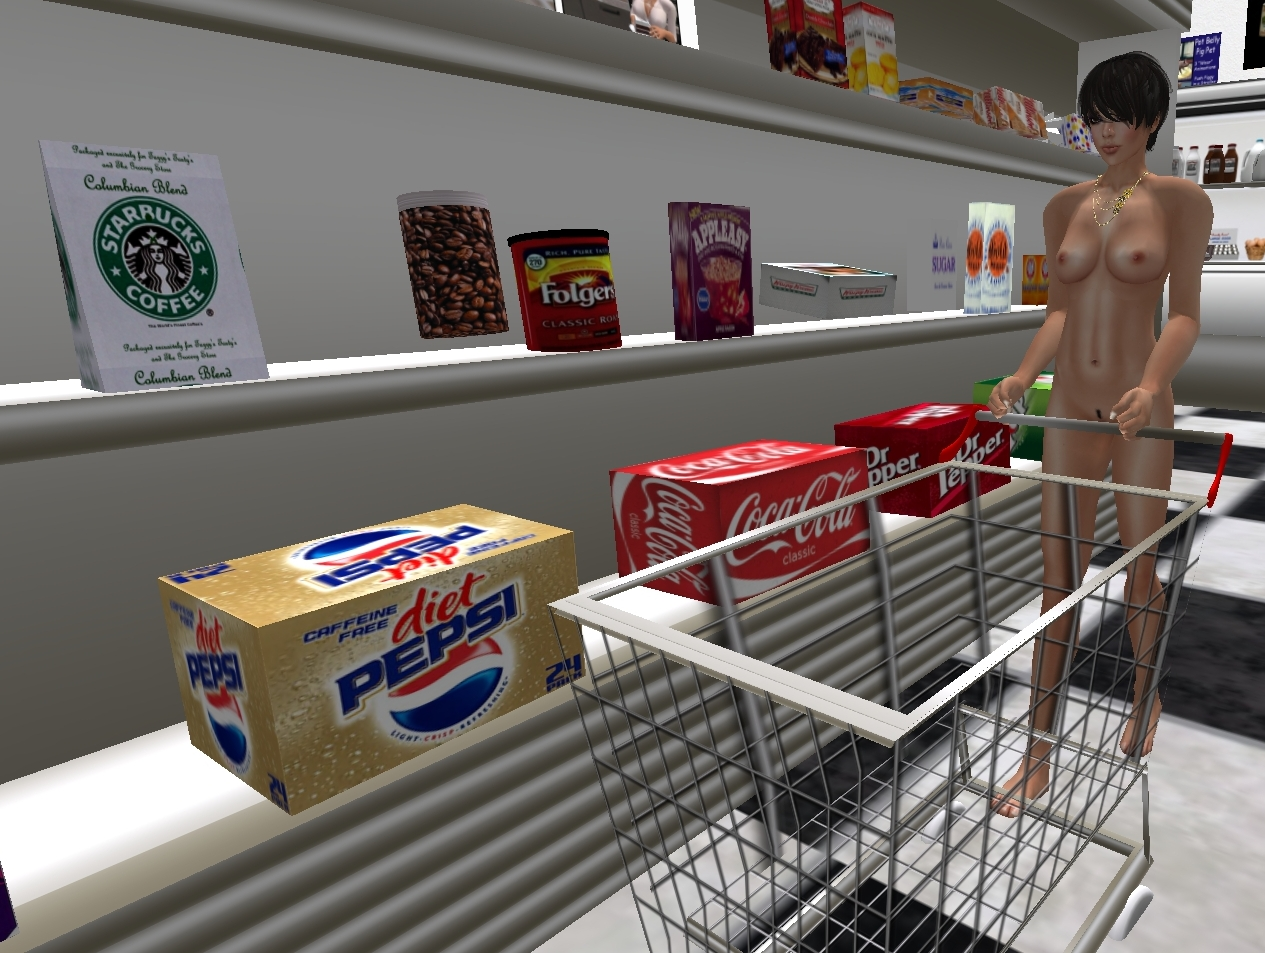 Naked in a supermarket